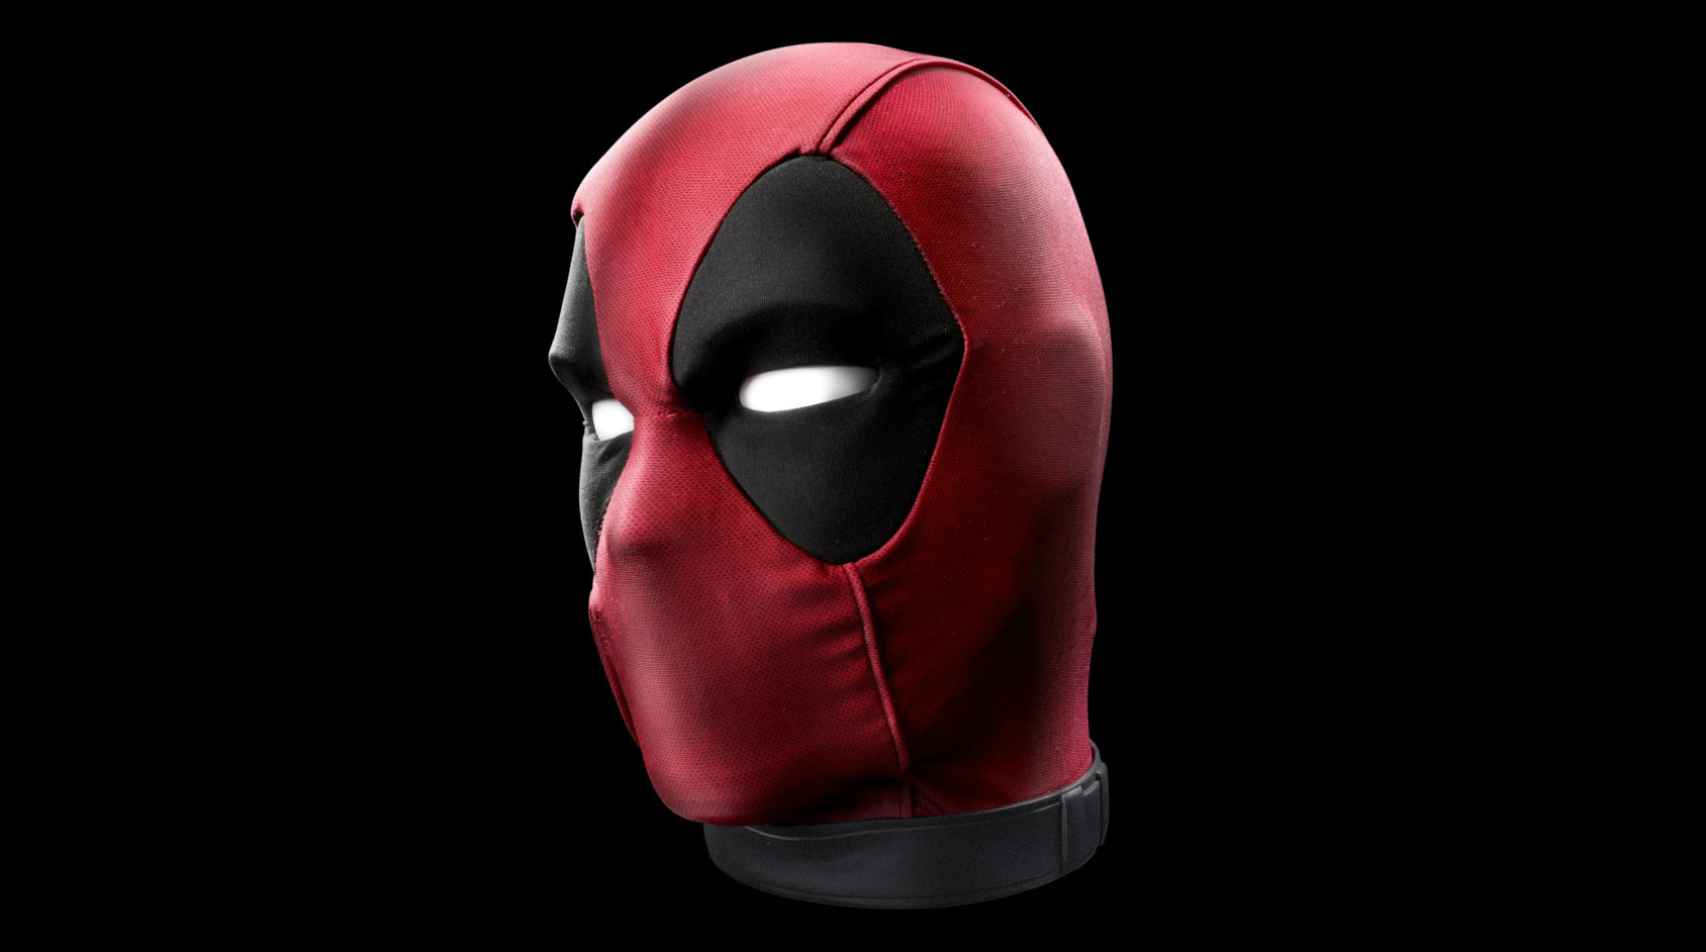 The Deadpool head is automated and has several sensors